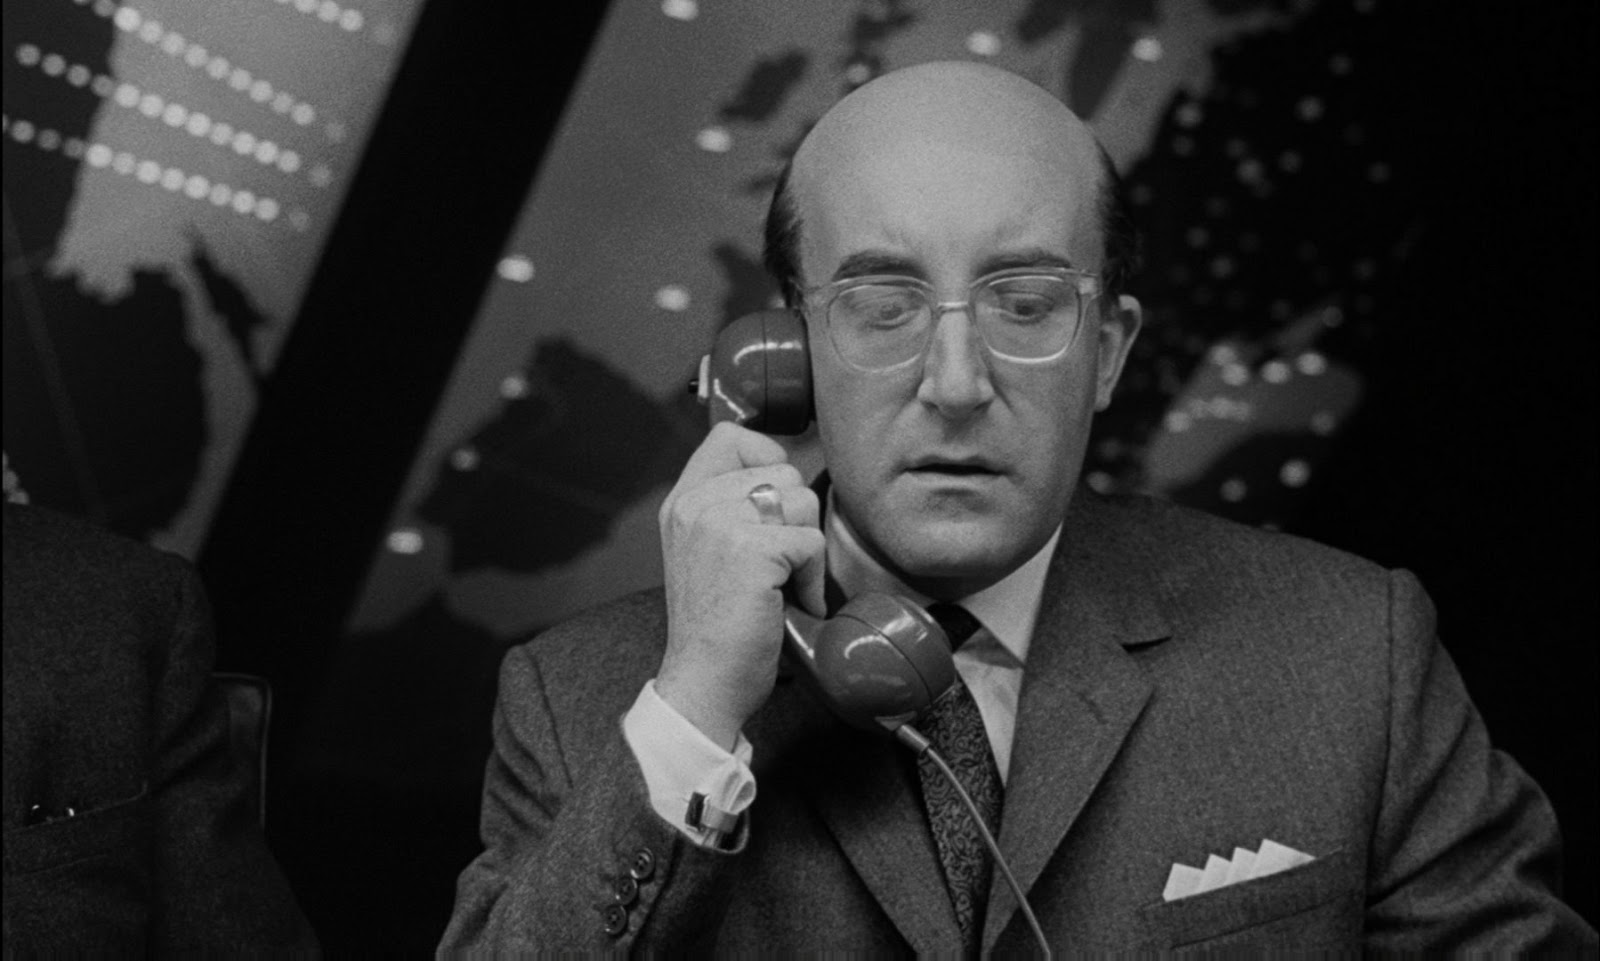 donald trump boing boing that dr strangelove scene where the u s president phones russia about an imminent air strike